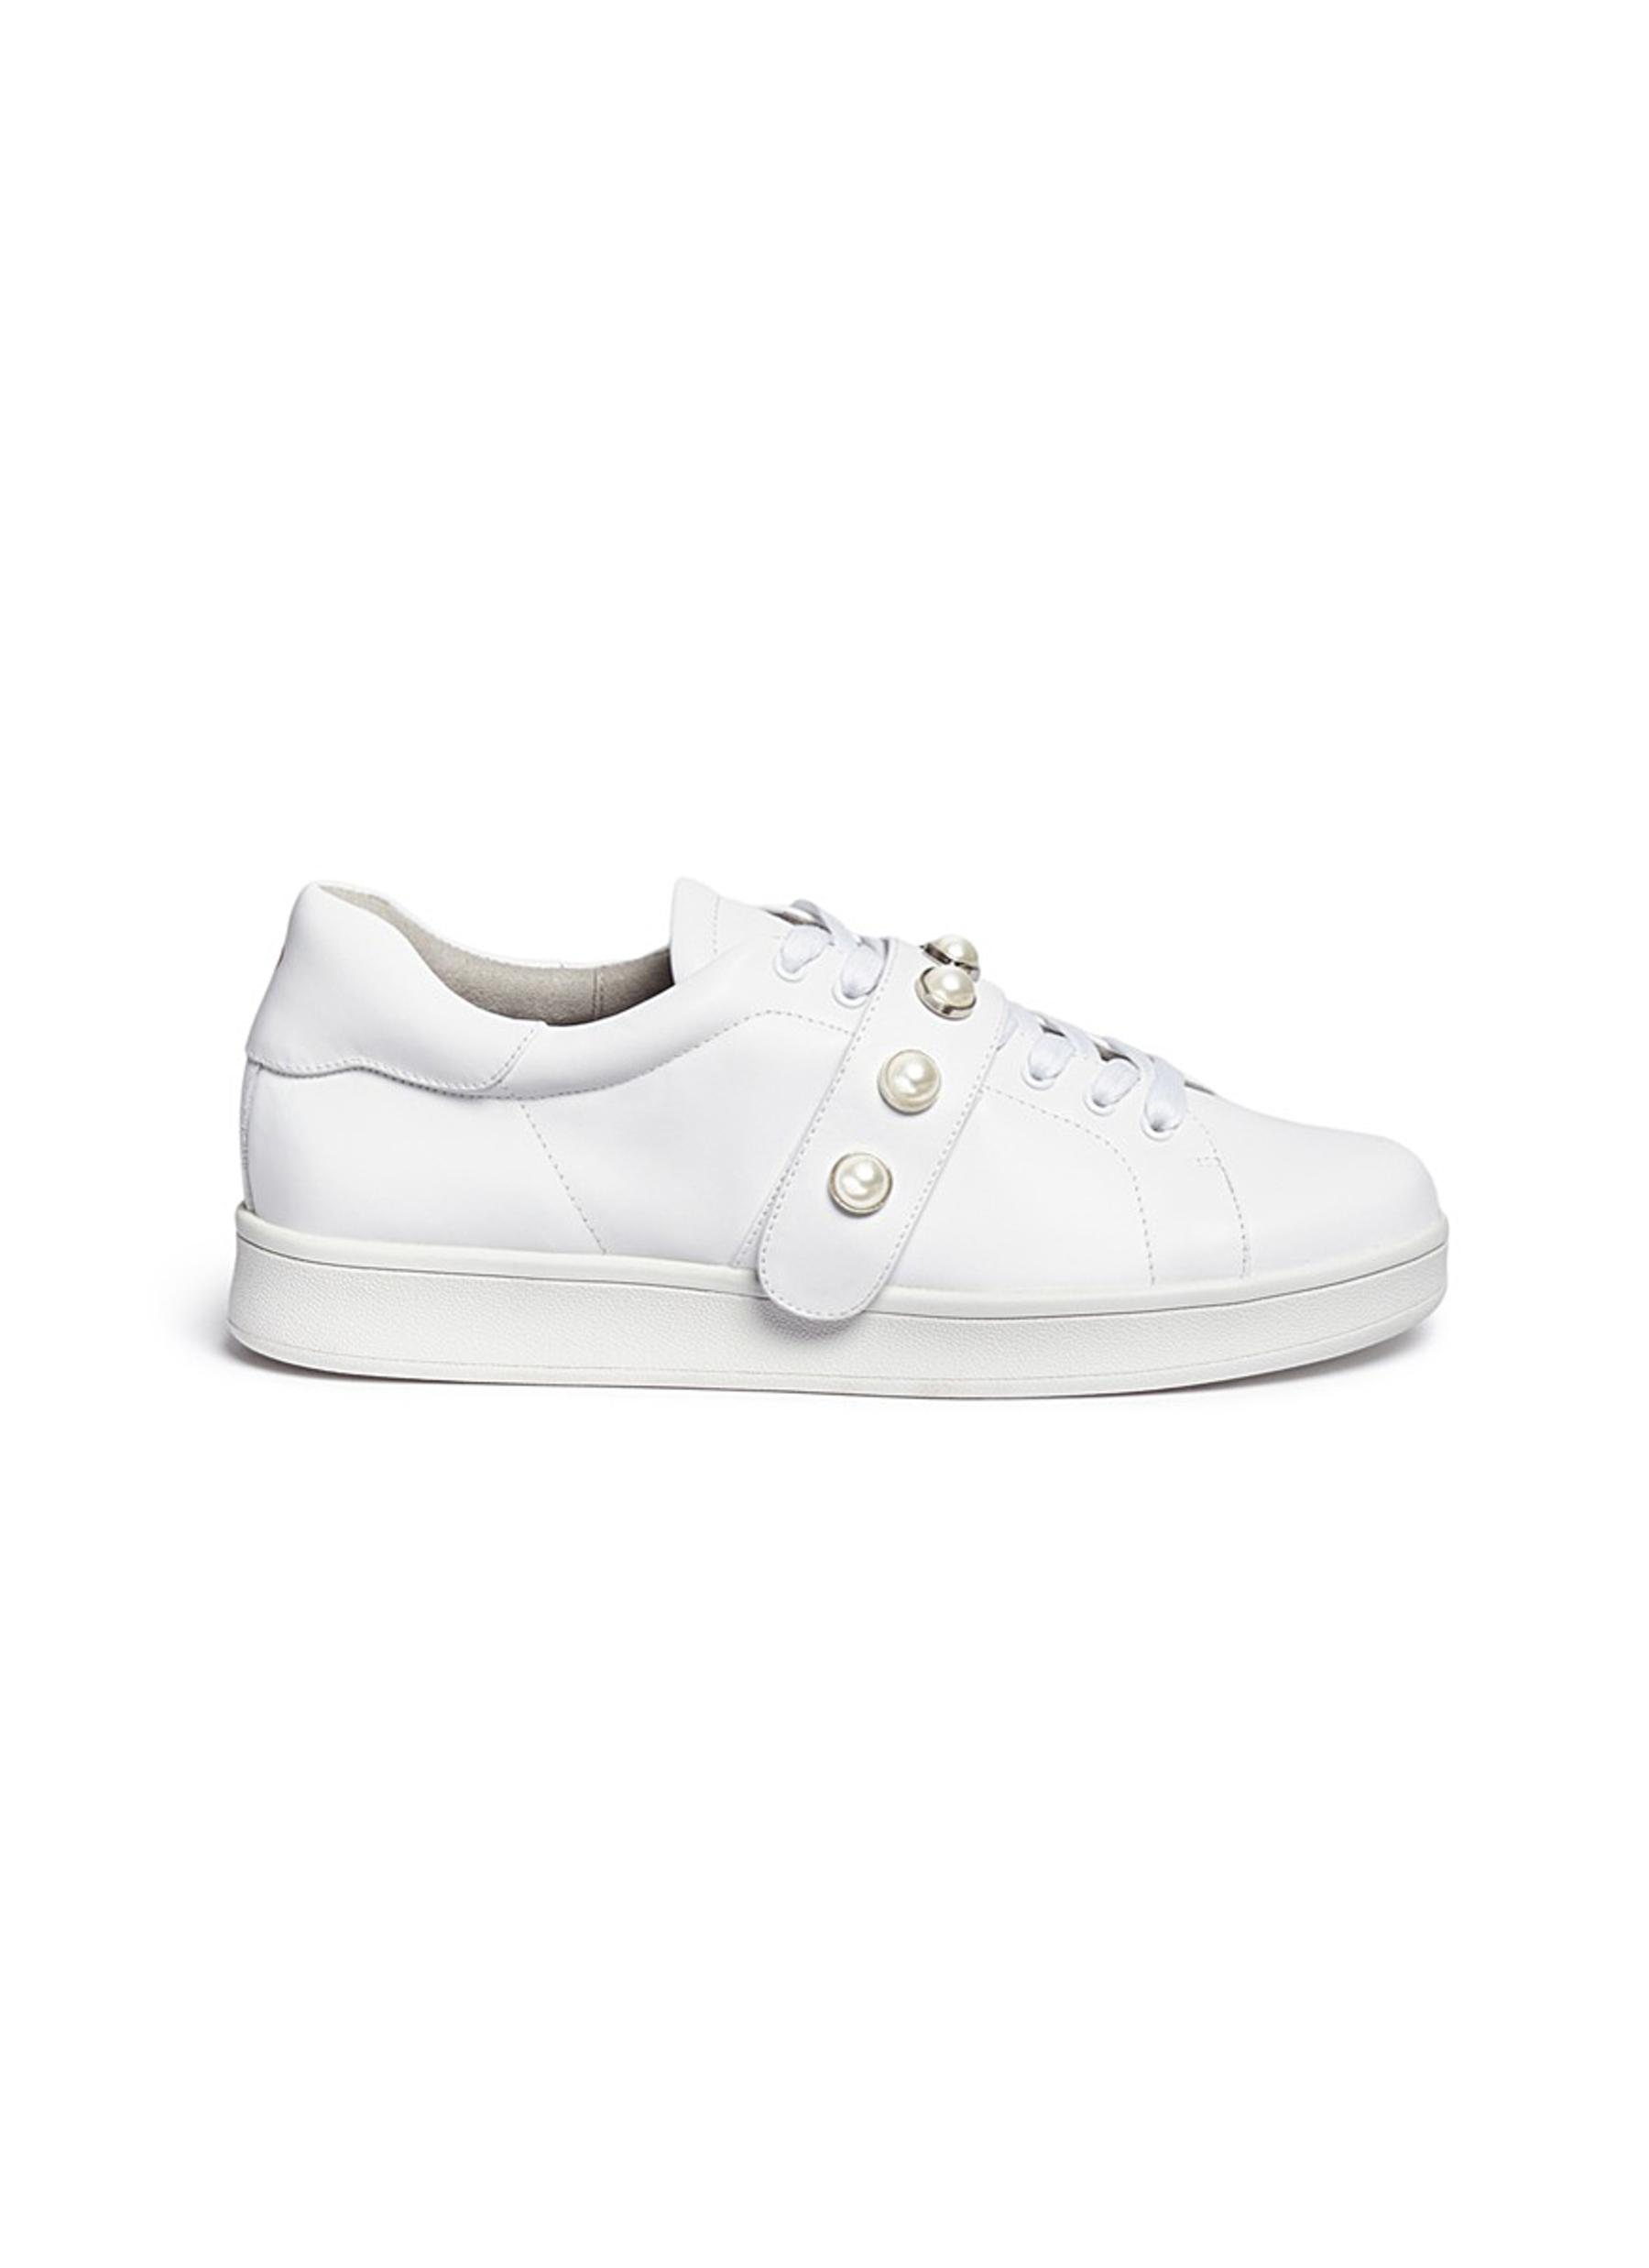 x Fleamadonna Faux pearl leather sneakers by Pedder Red